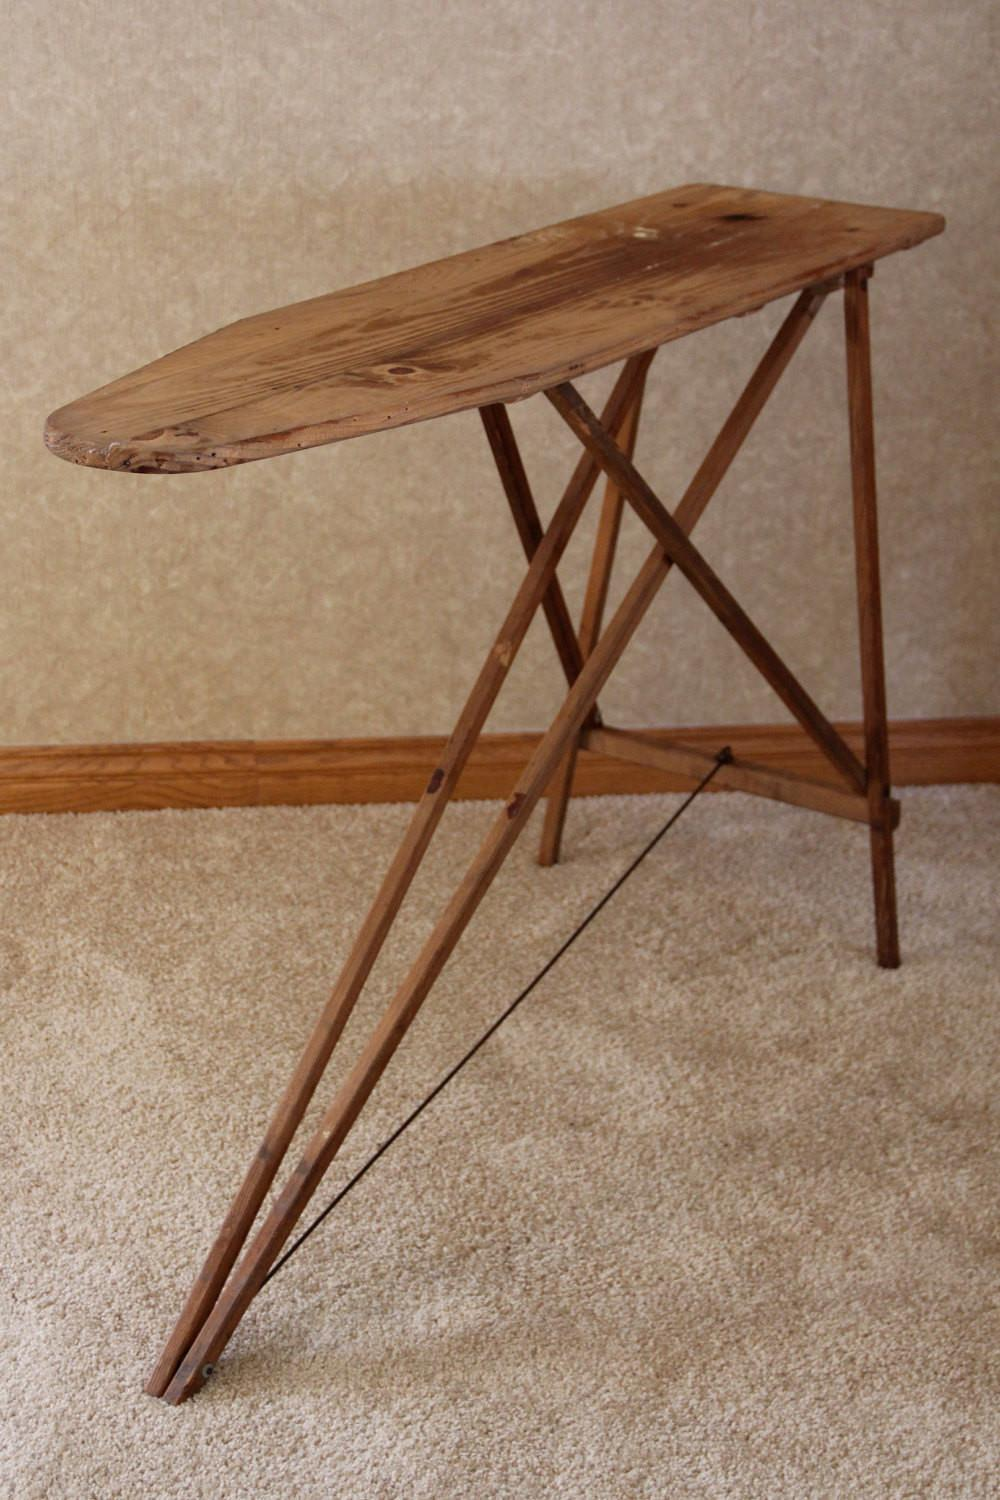 1940 Antique Wooden Ironing Board Bailey Inc